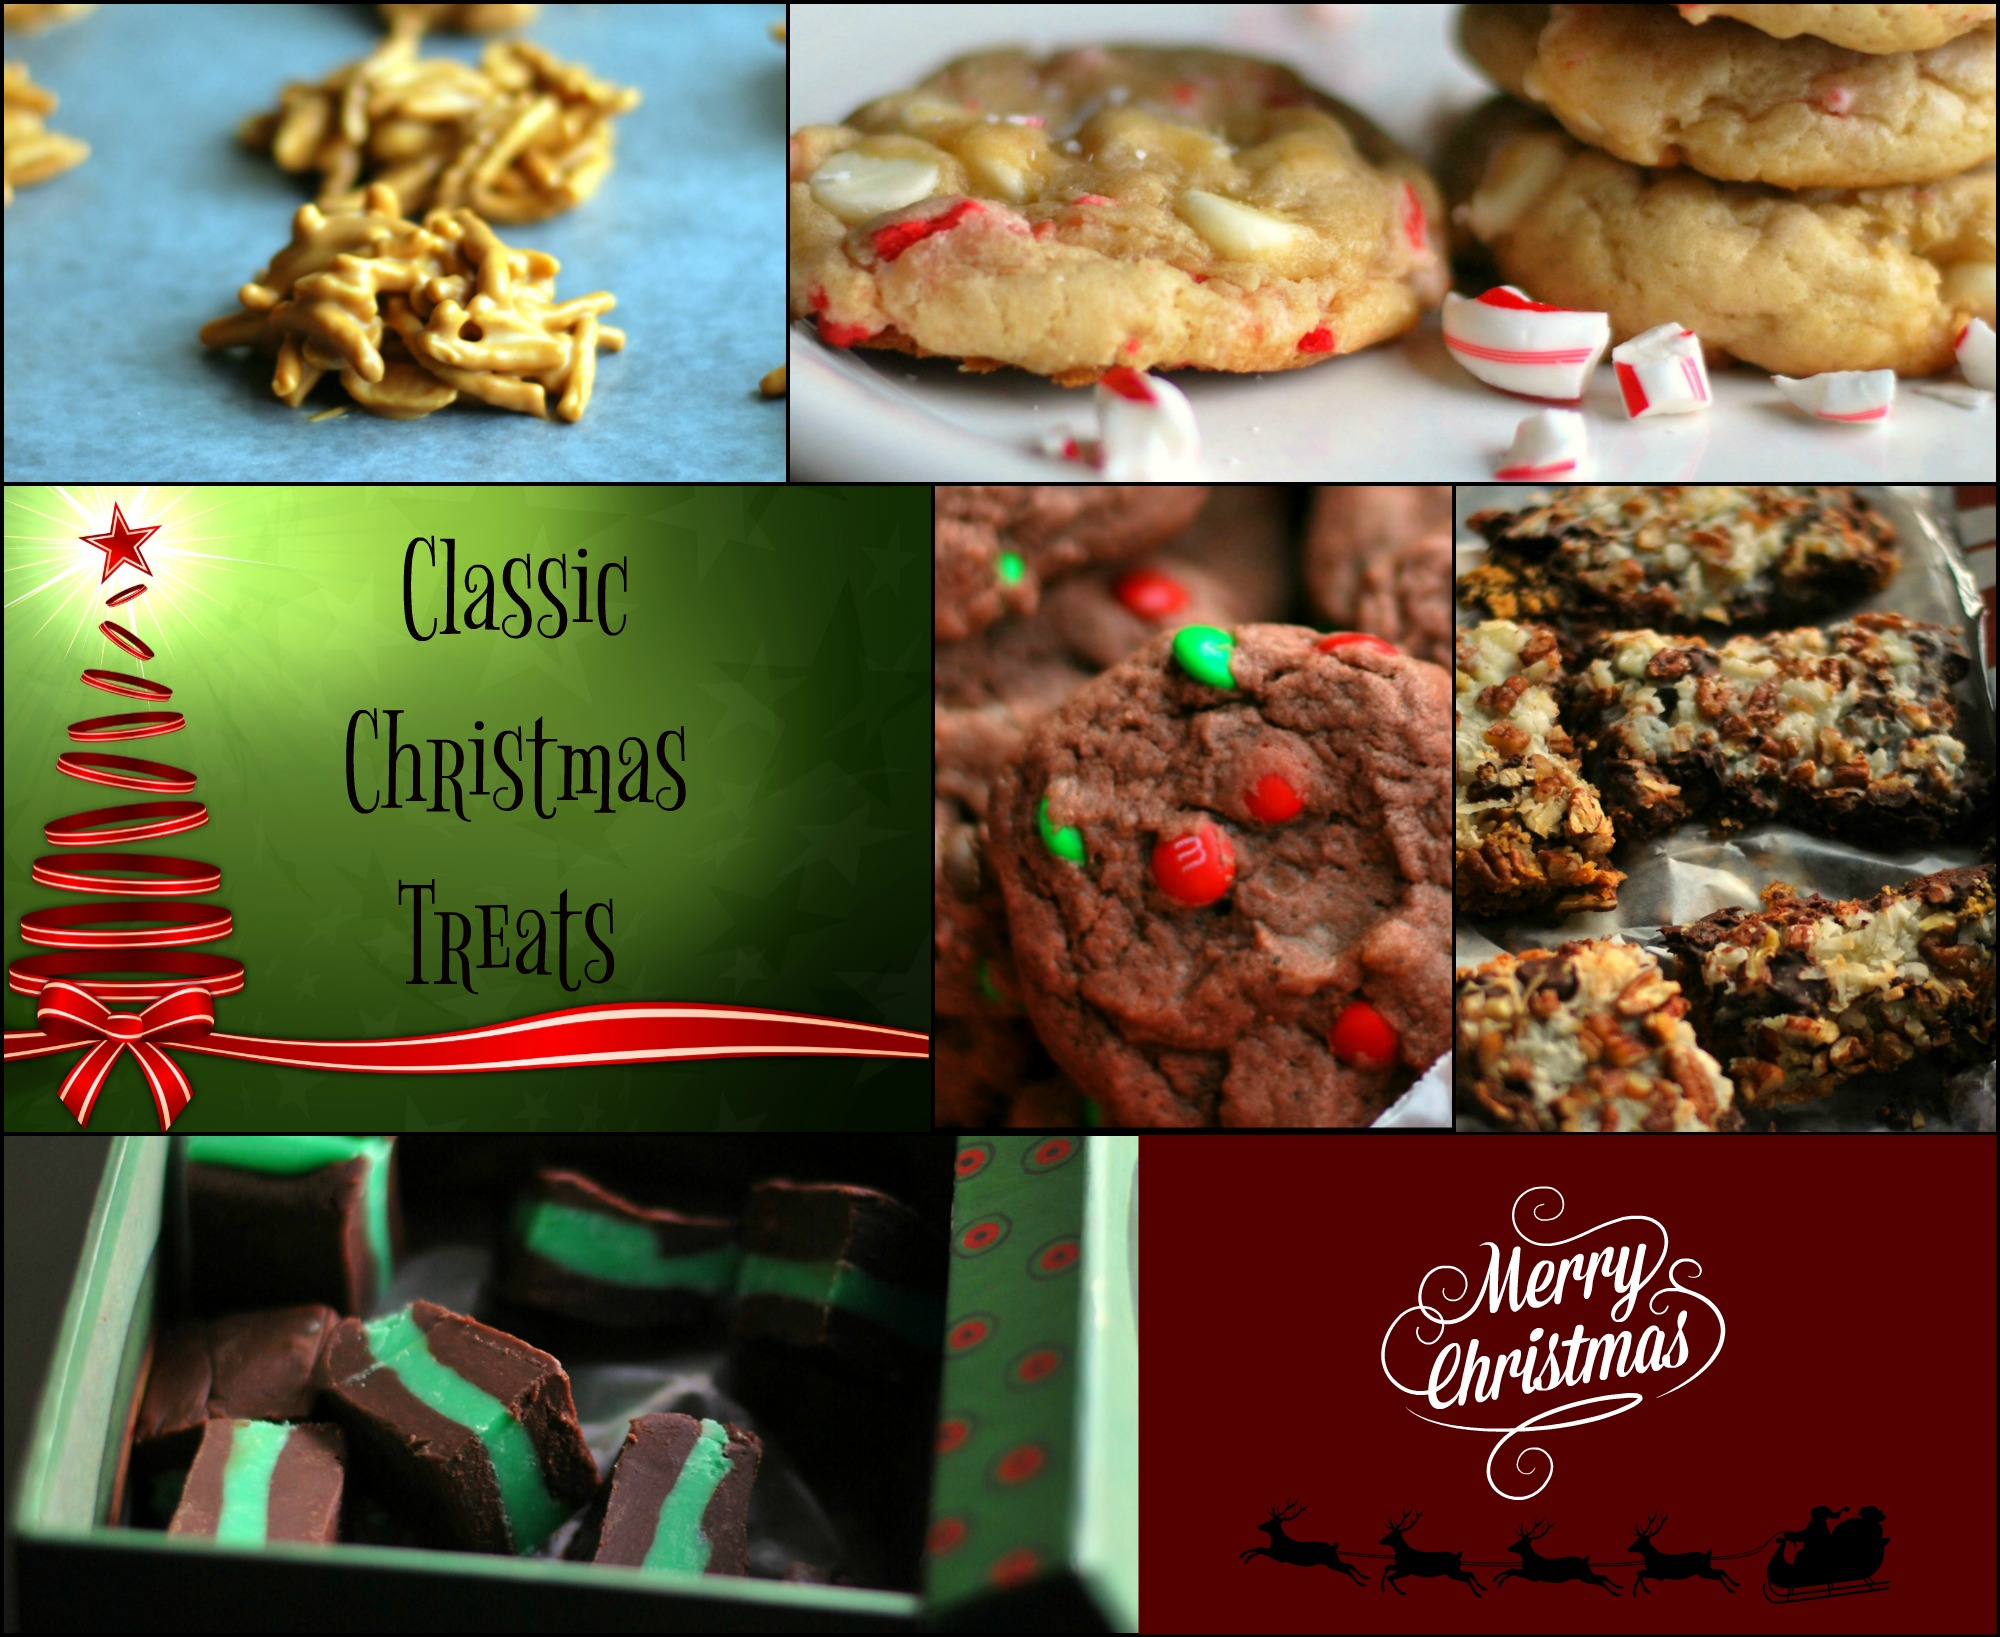 Classic Christmas Treats